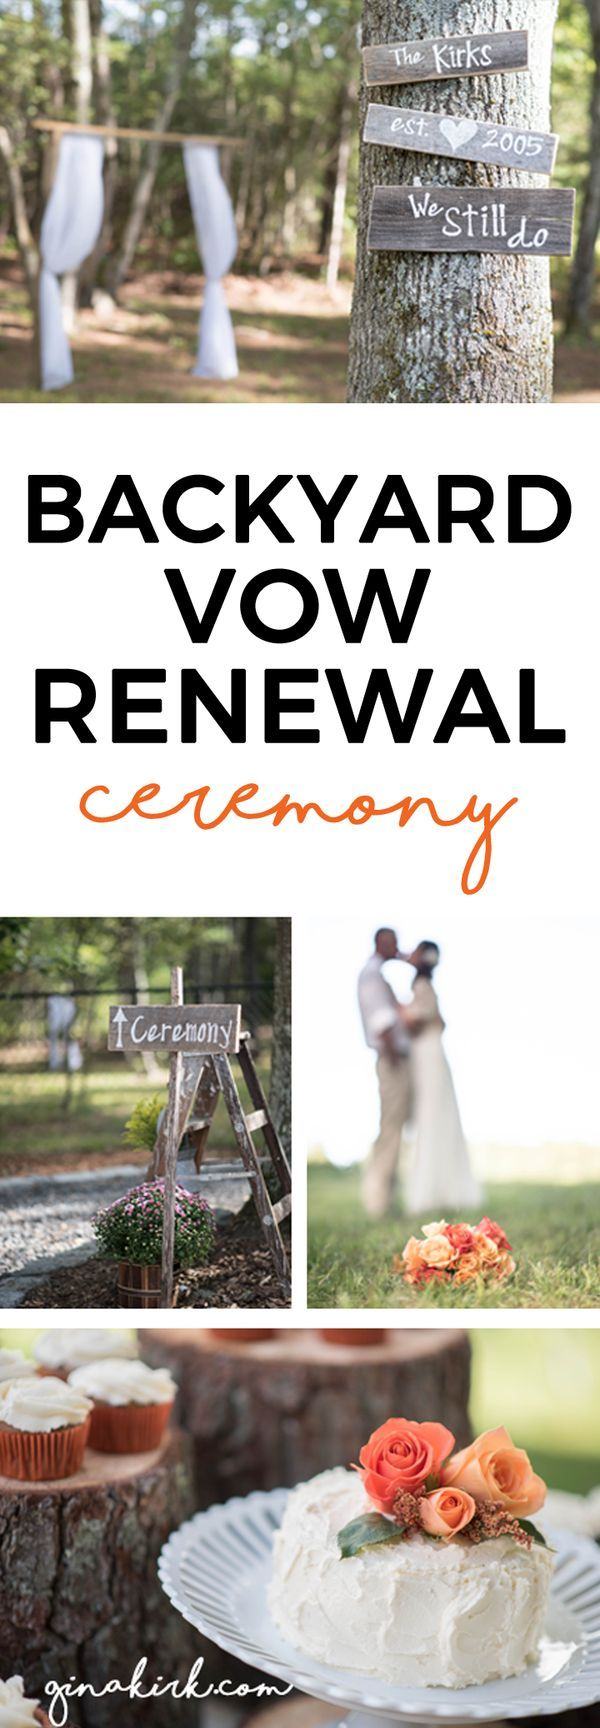 Celebrating 10 Years: Our Backyard Vow Renewal | Pinterest | Vintage ...